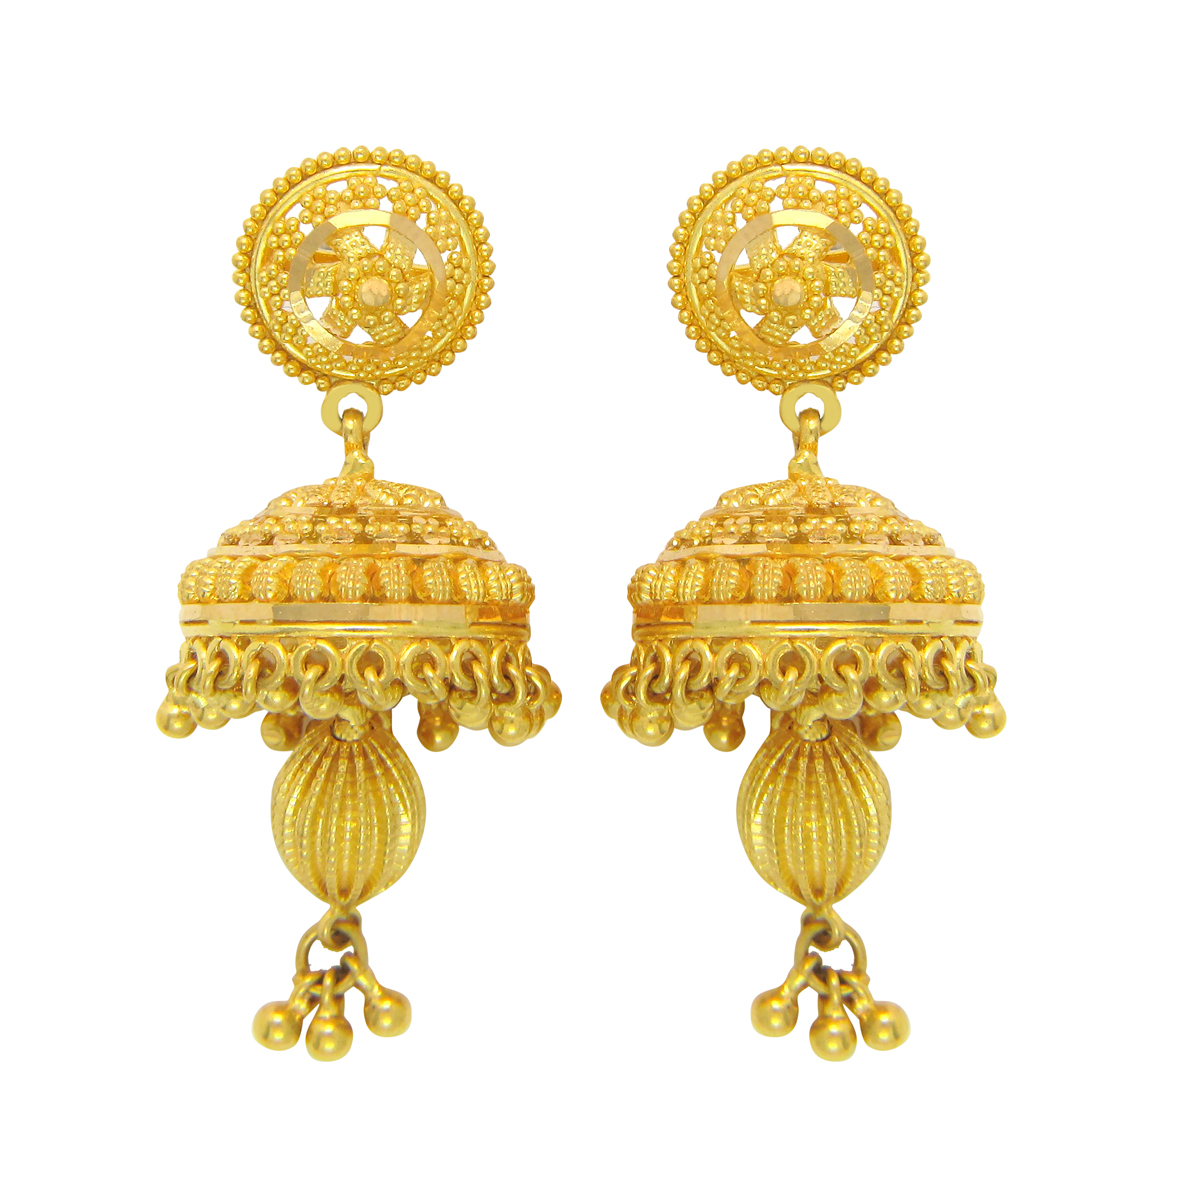 Popley 22Kt Gold Bandhan Earring - A89